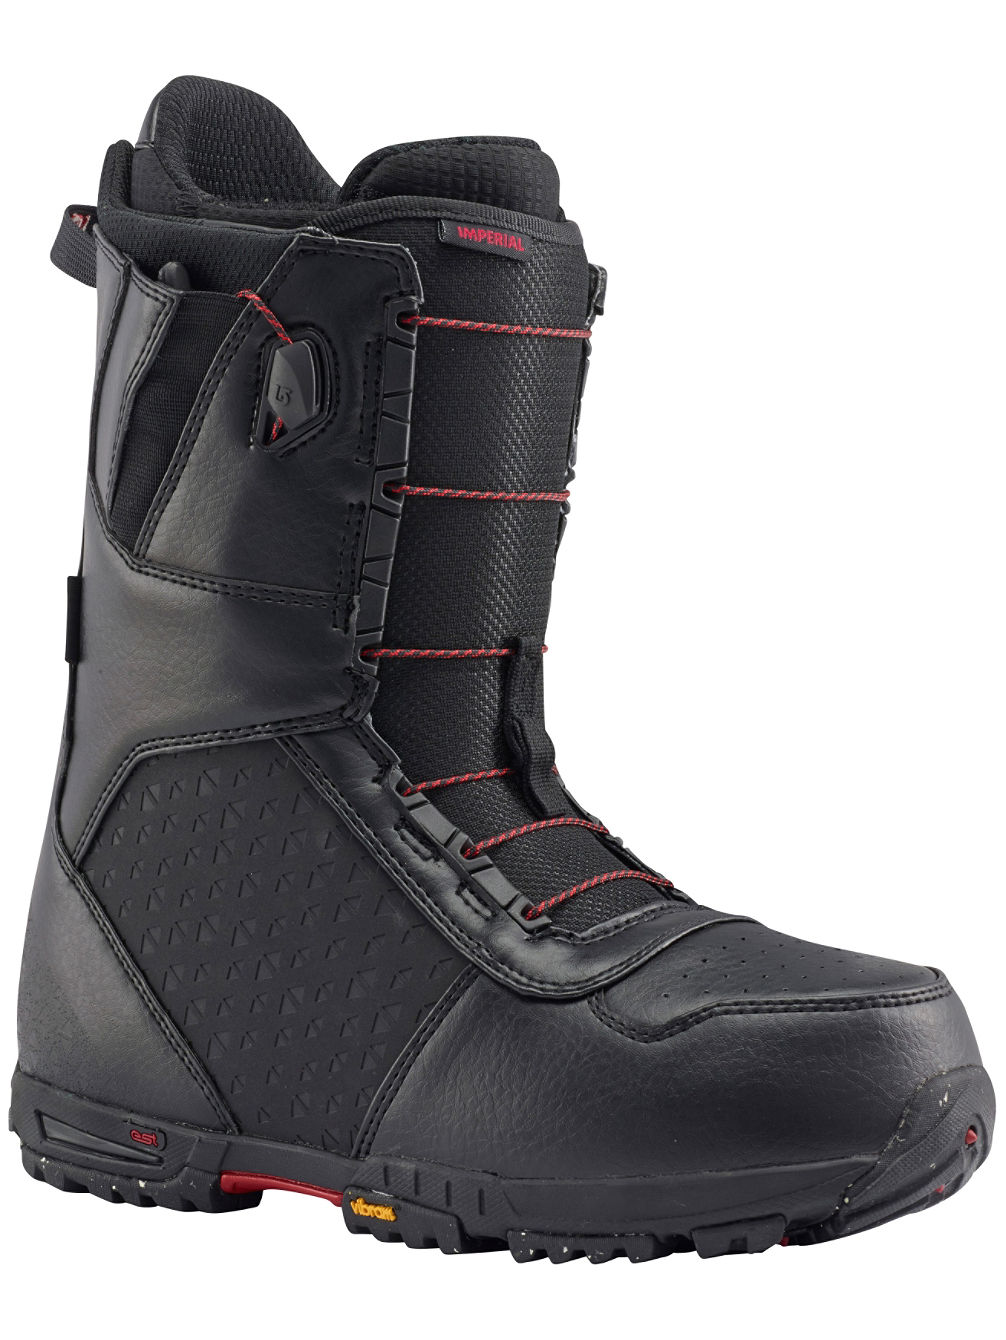 Imperial Snowboardboots